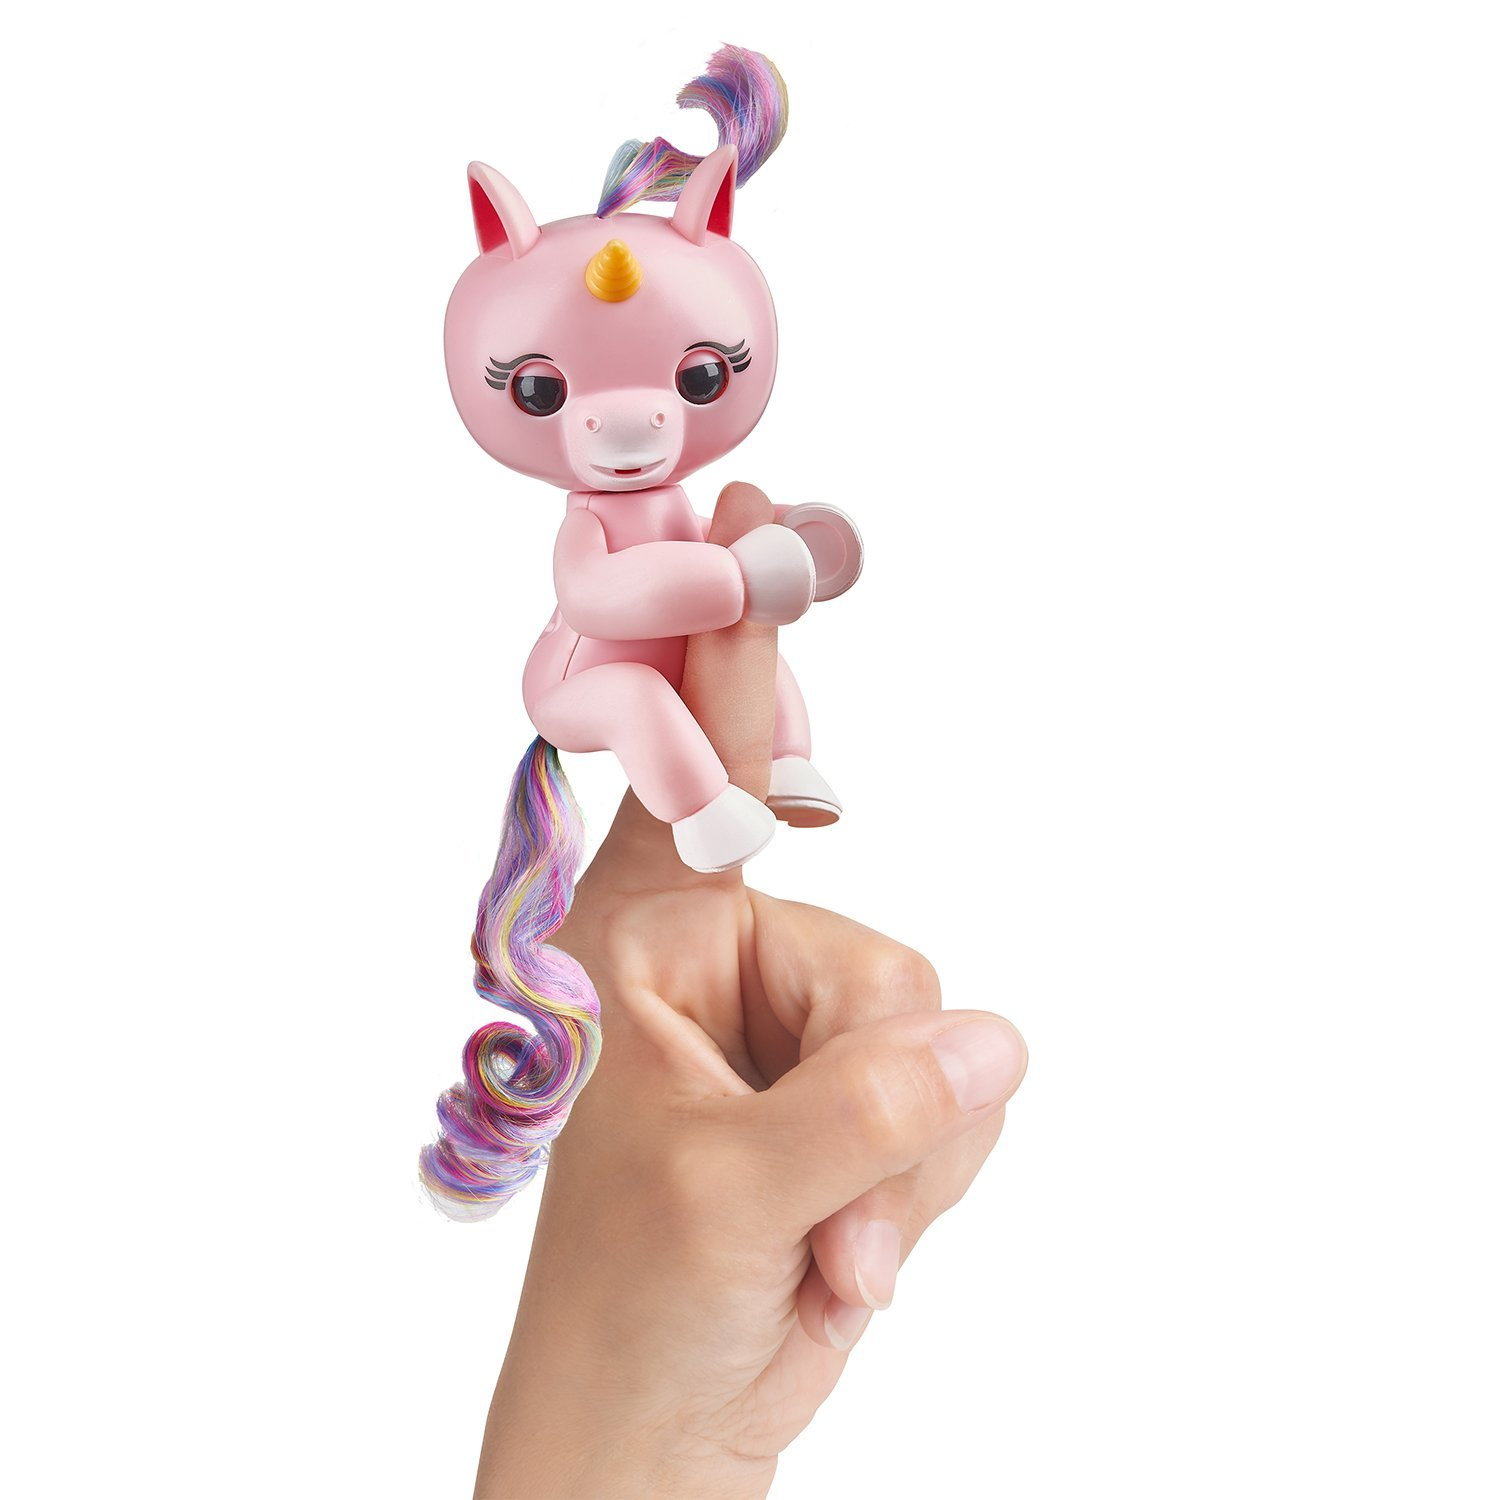 Baby Unicorn - Gemma (Pink with Rainbow Mane and Tail) - Interactive Baby Pet